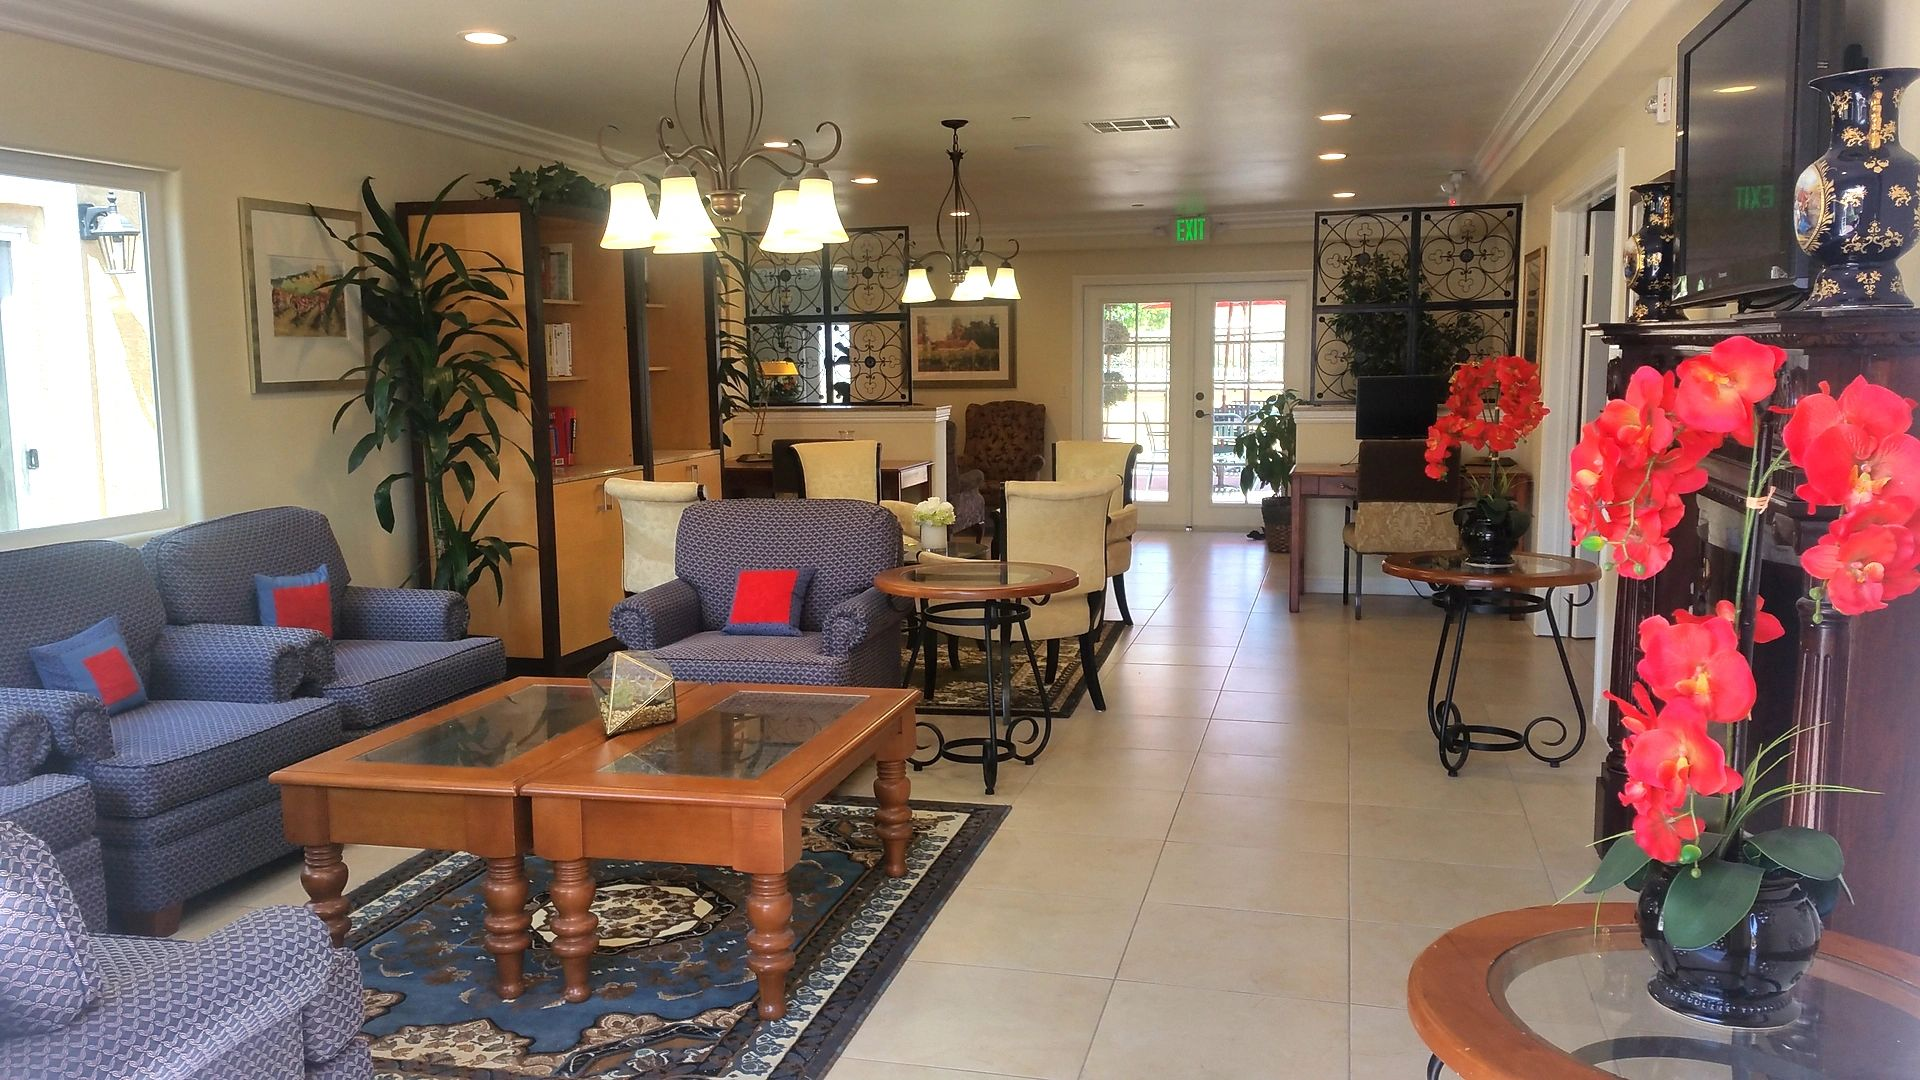 The living area of this assisted living facility features several blue and white chairs, red flowers, and more.